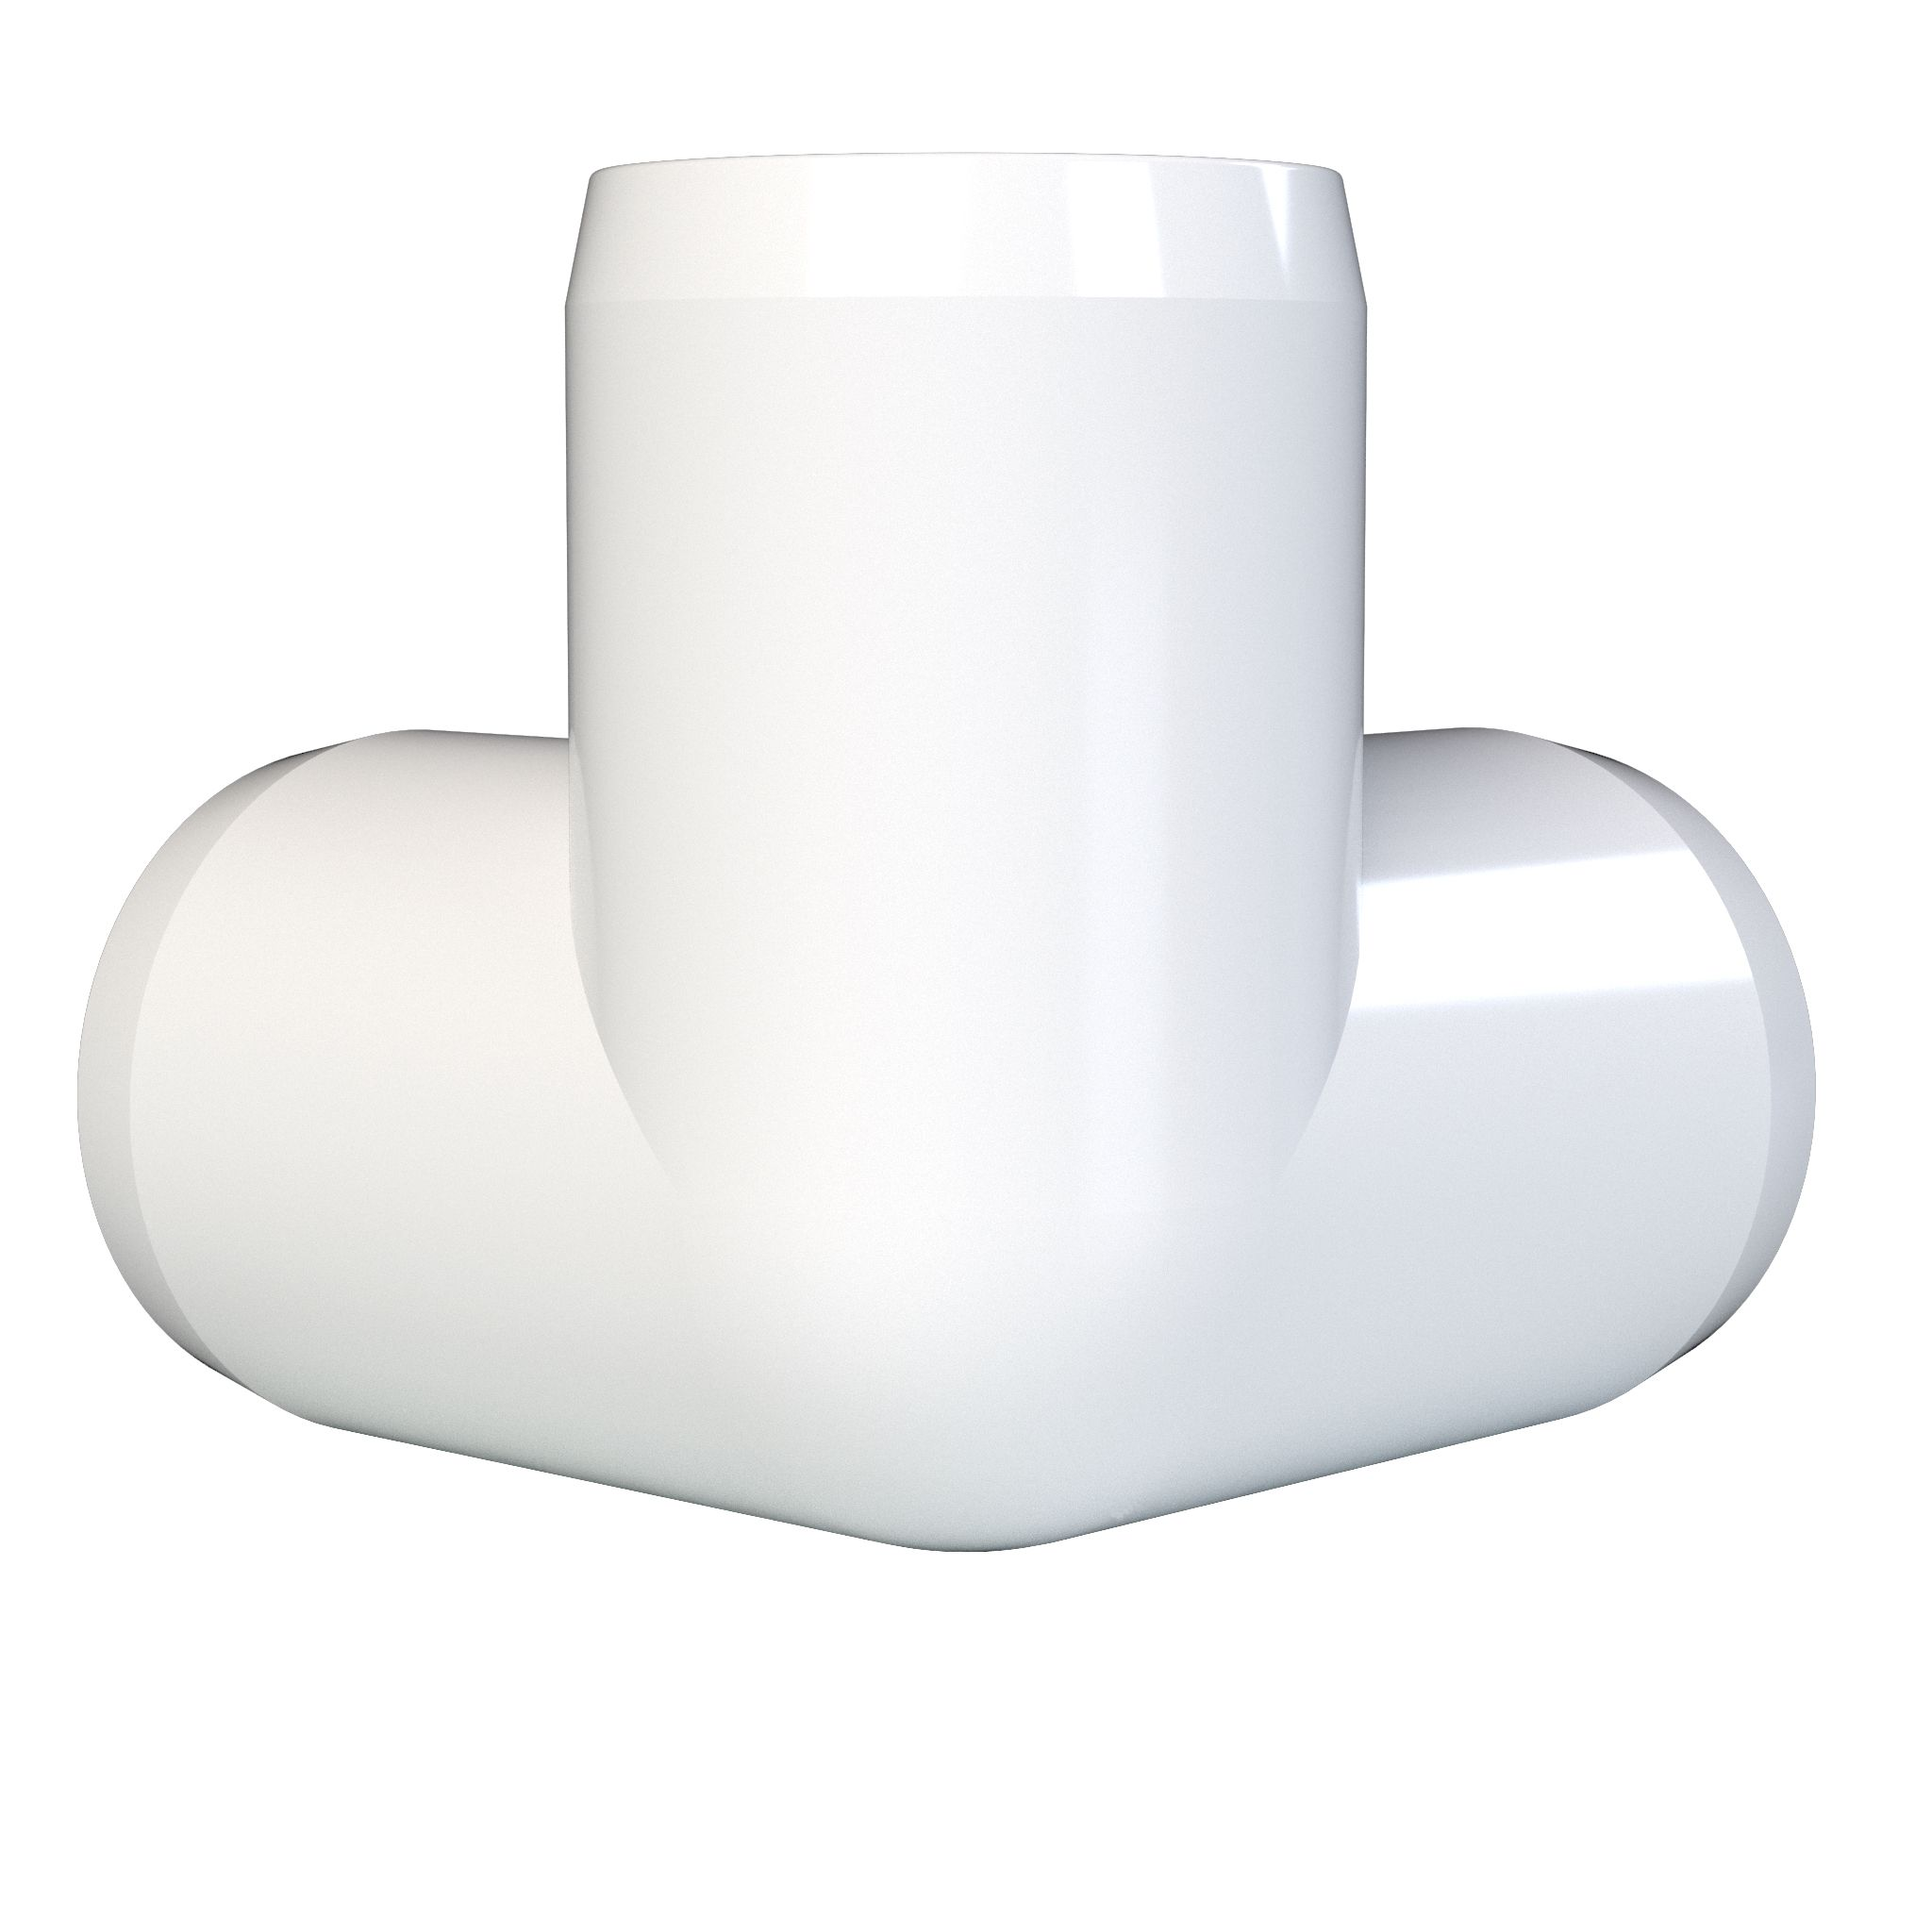 1 2 3 Way Pvc Elbow Fitting Furniture Grade Pvc Fittings Pvc Pvc Elbow